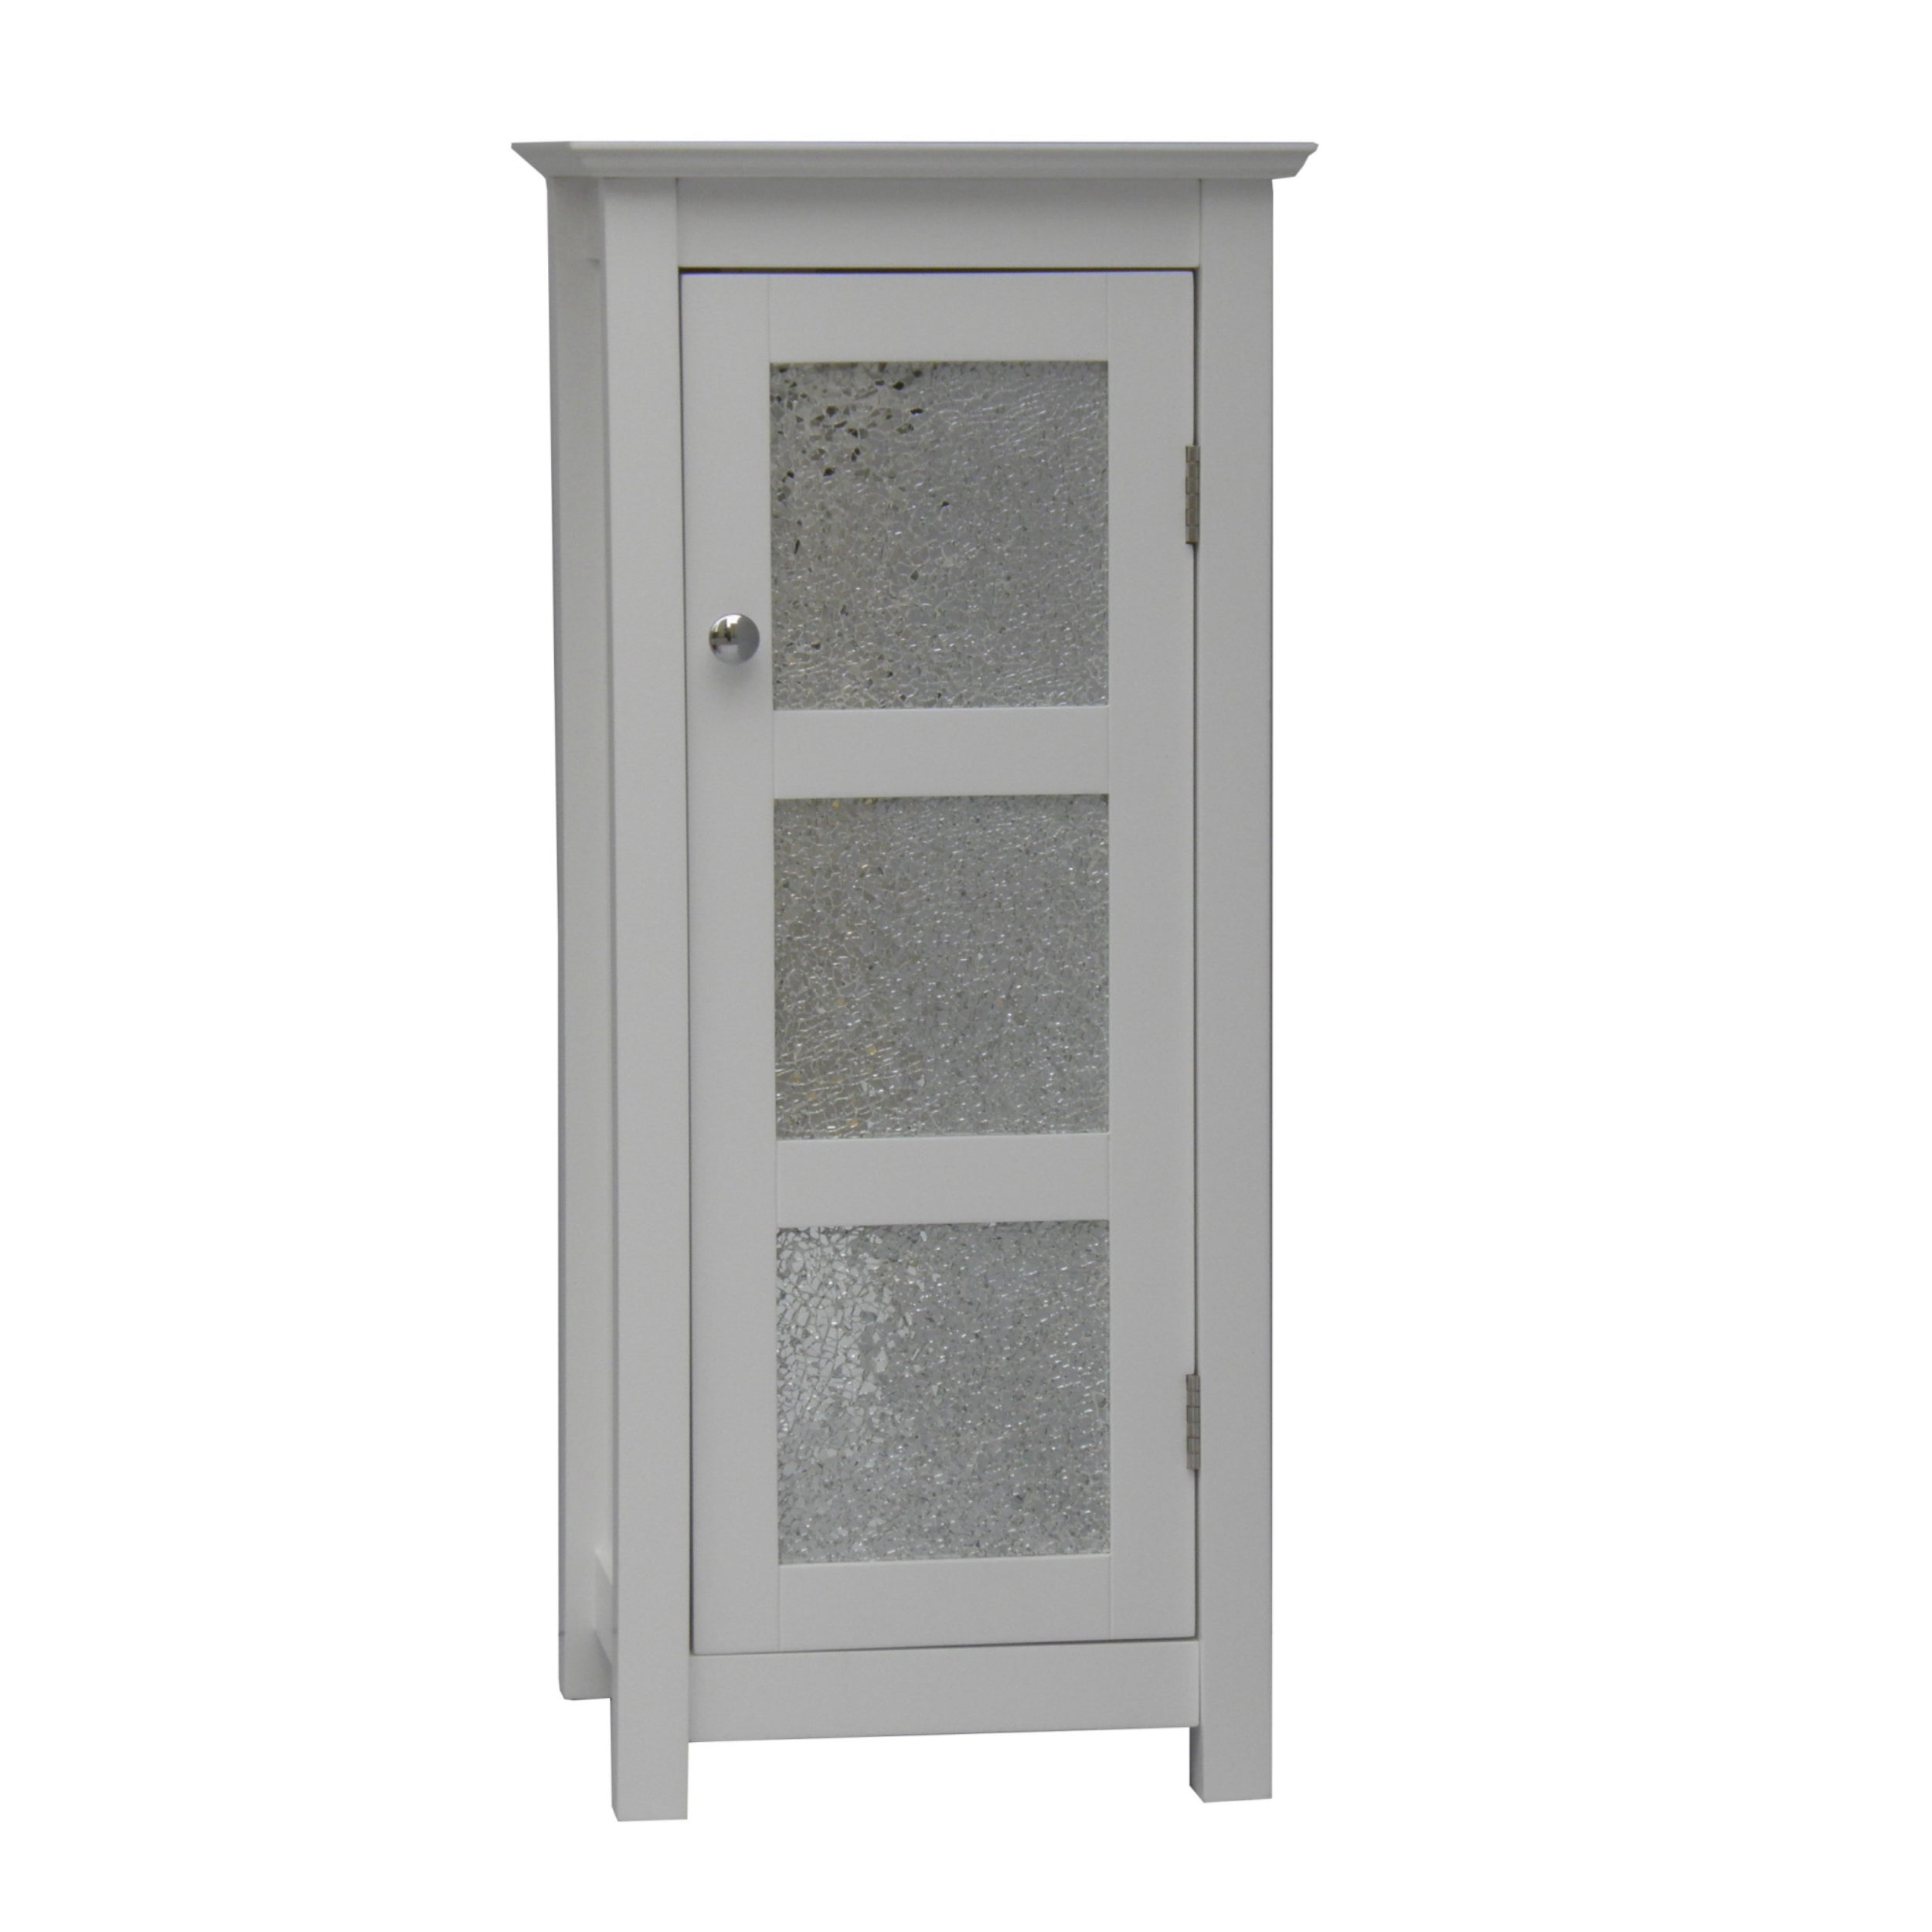 Fifth Avenue Silver Mosaic Floor Cabinet - Thumbnail 0